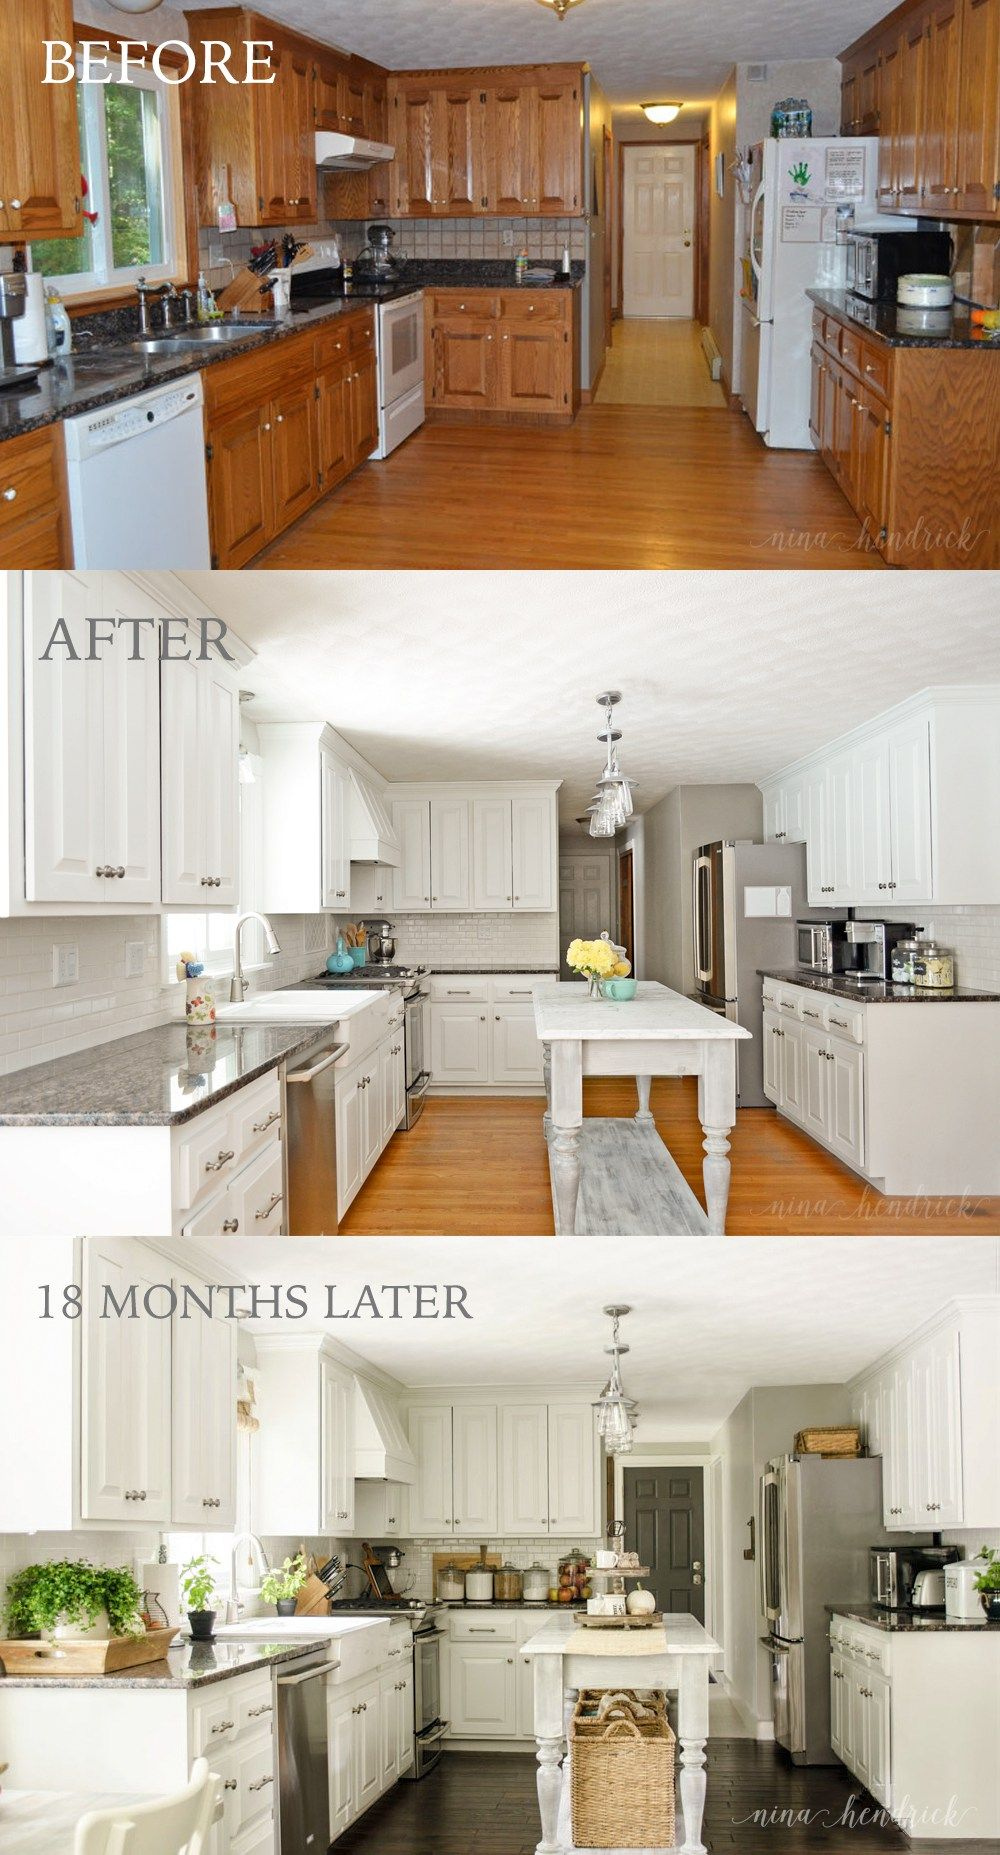 White Painted Kitchen Before, After, U0026 18 Months Later By @nina_hendrick